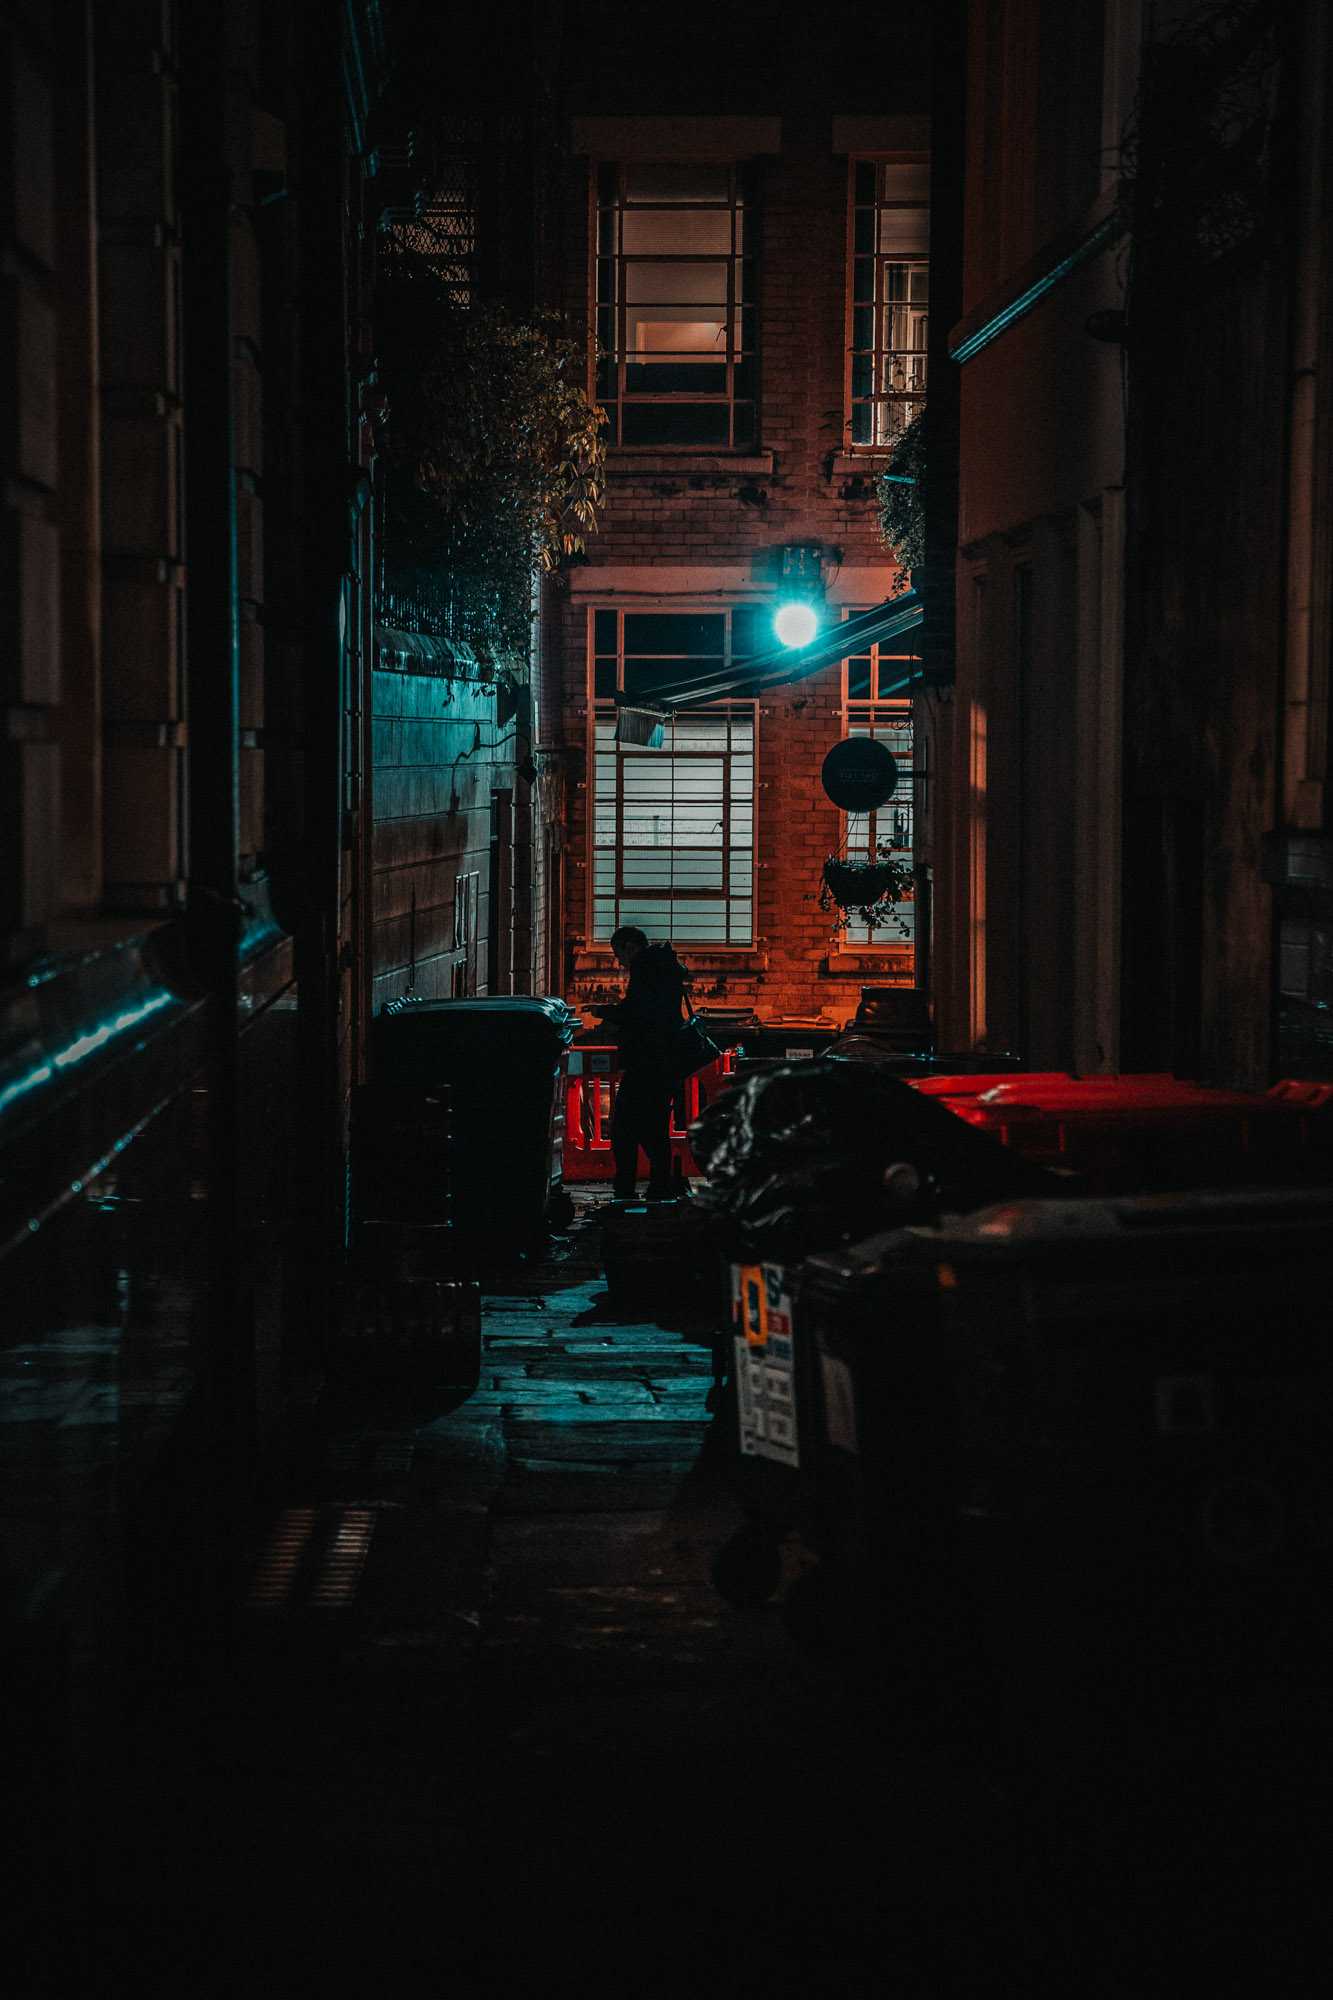 Moody scene of a person walking past an alley at night